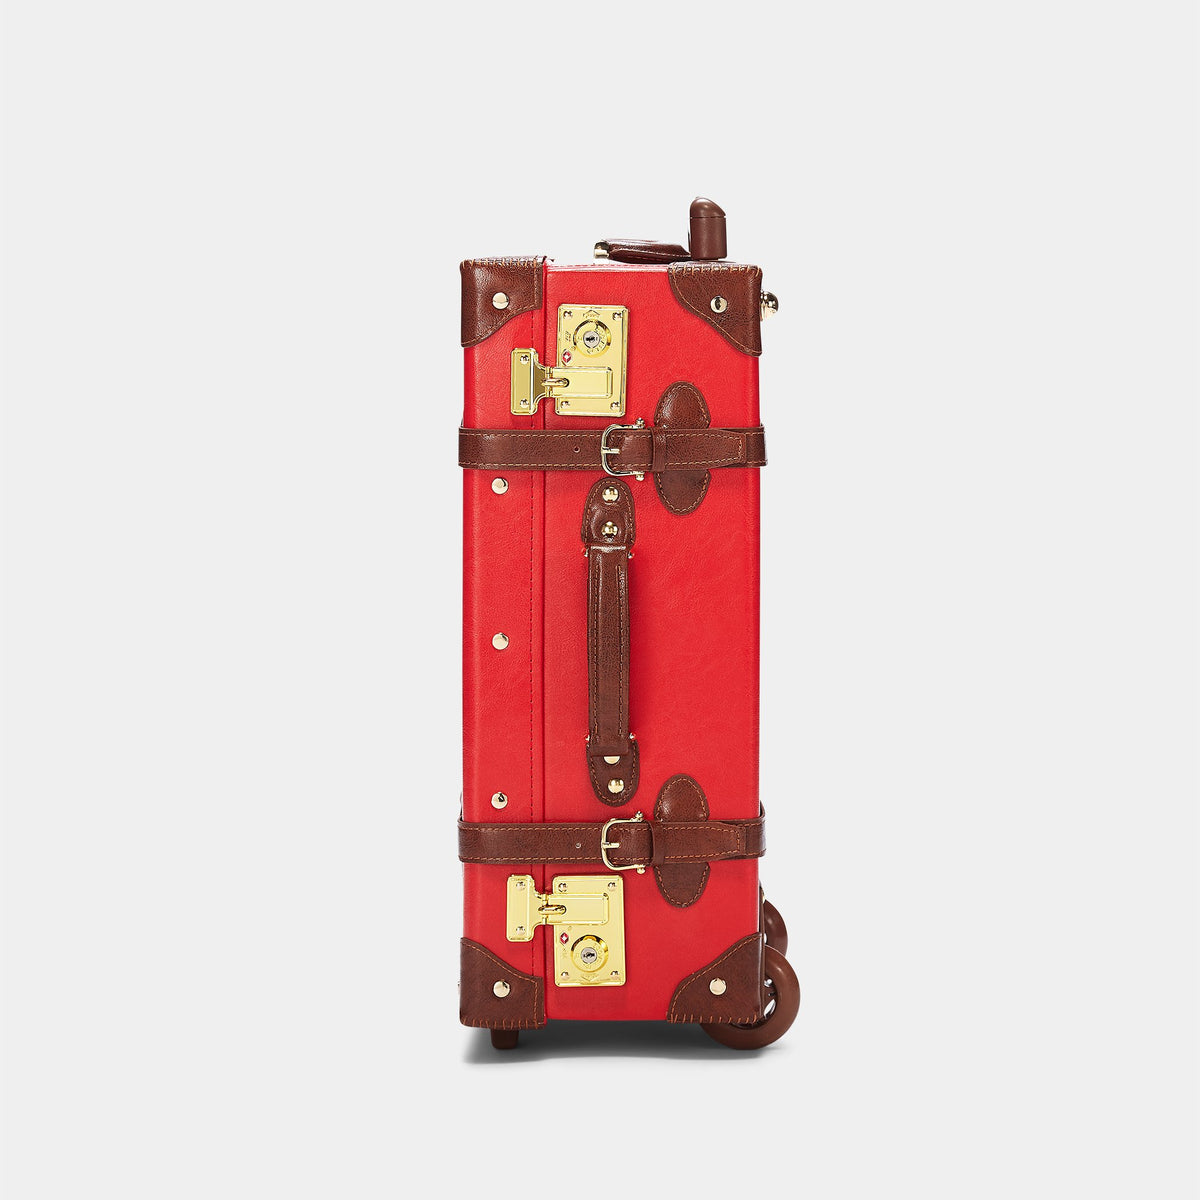 The Entrepreneur Carryon in Red - Vintage-Inspired Vegan Luggage - Exterior Side